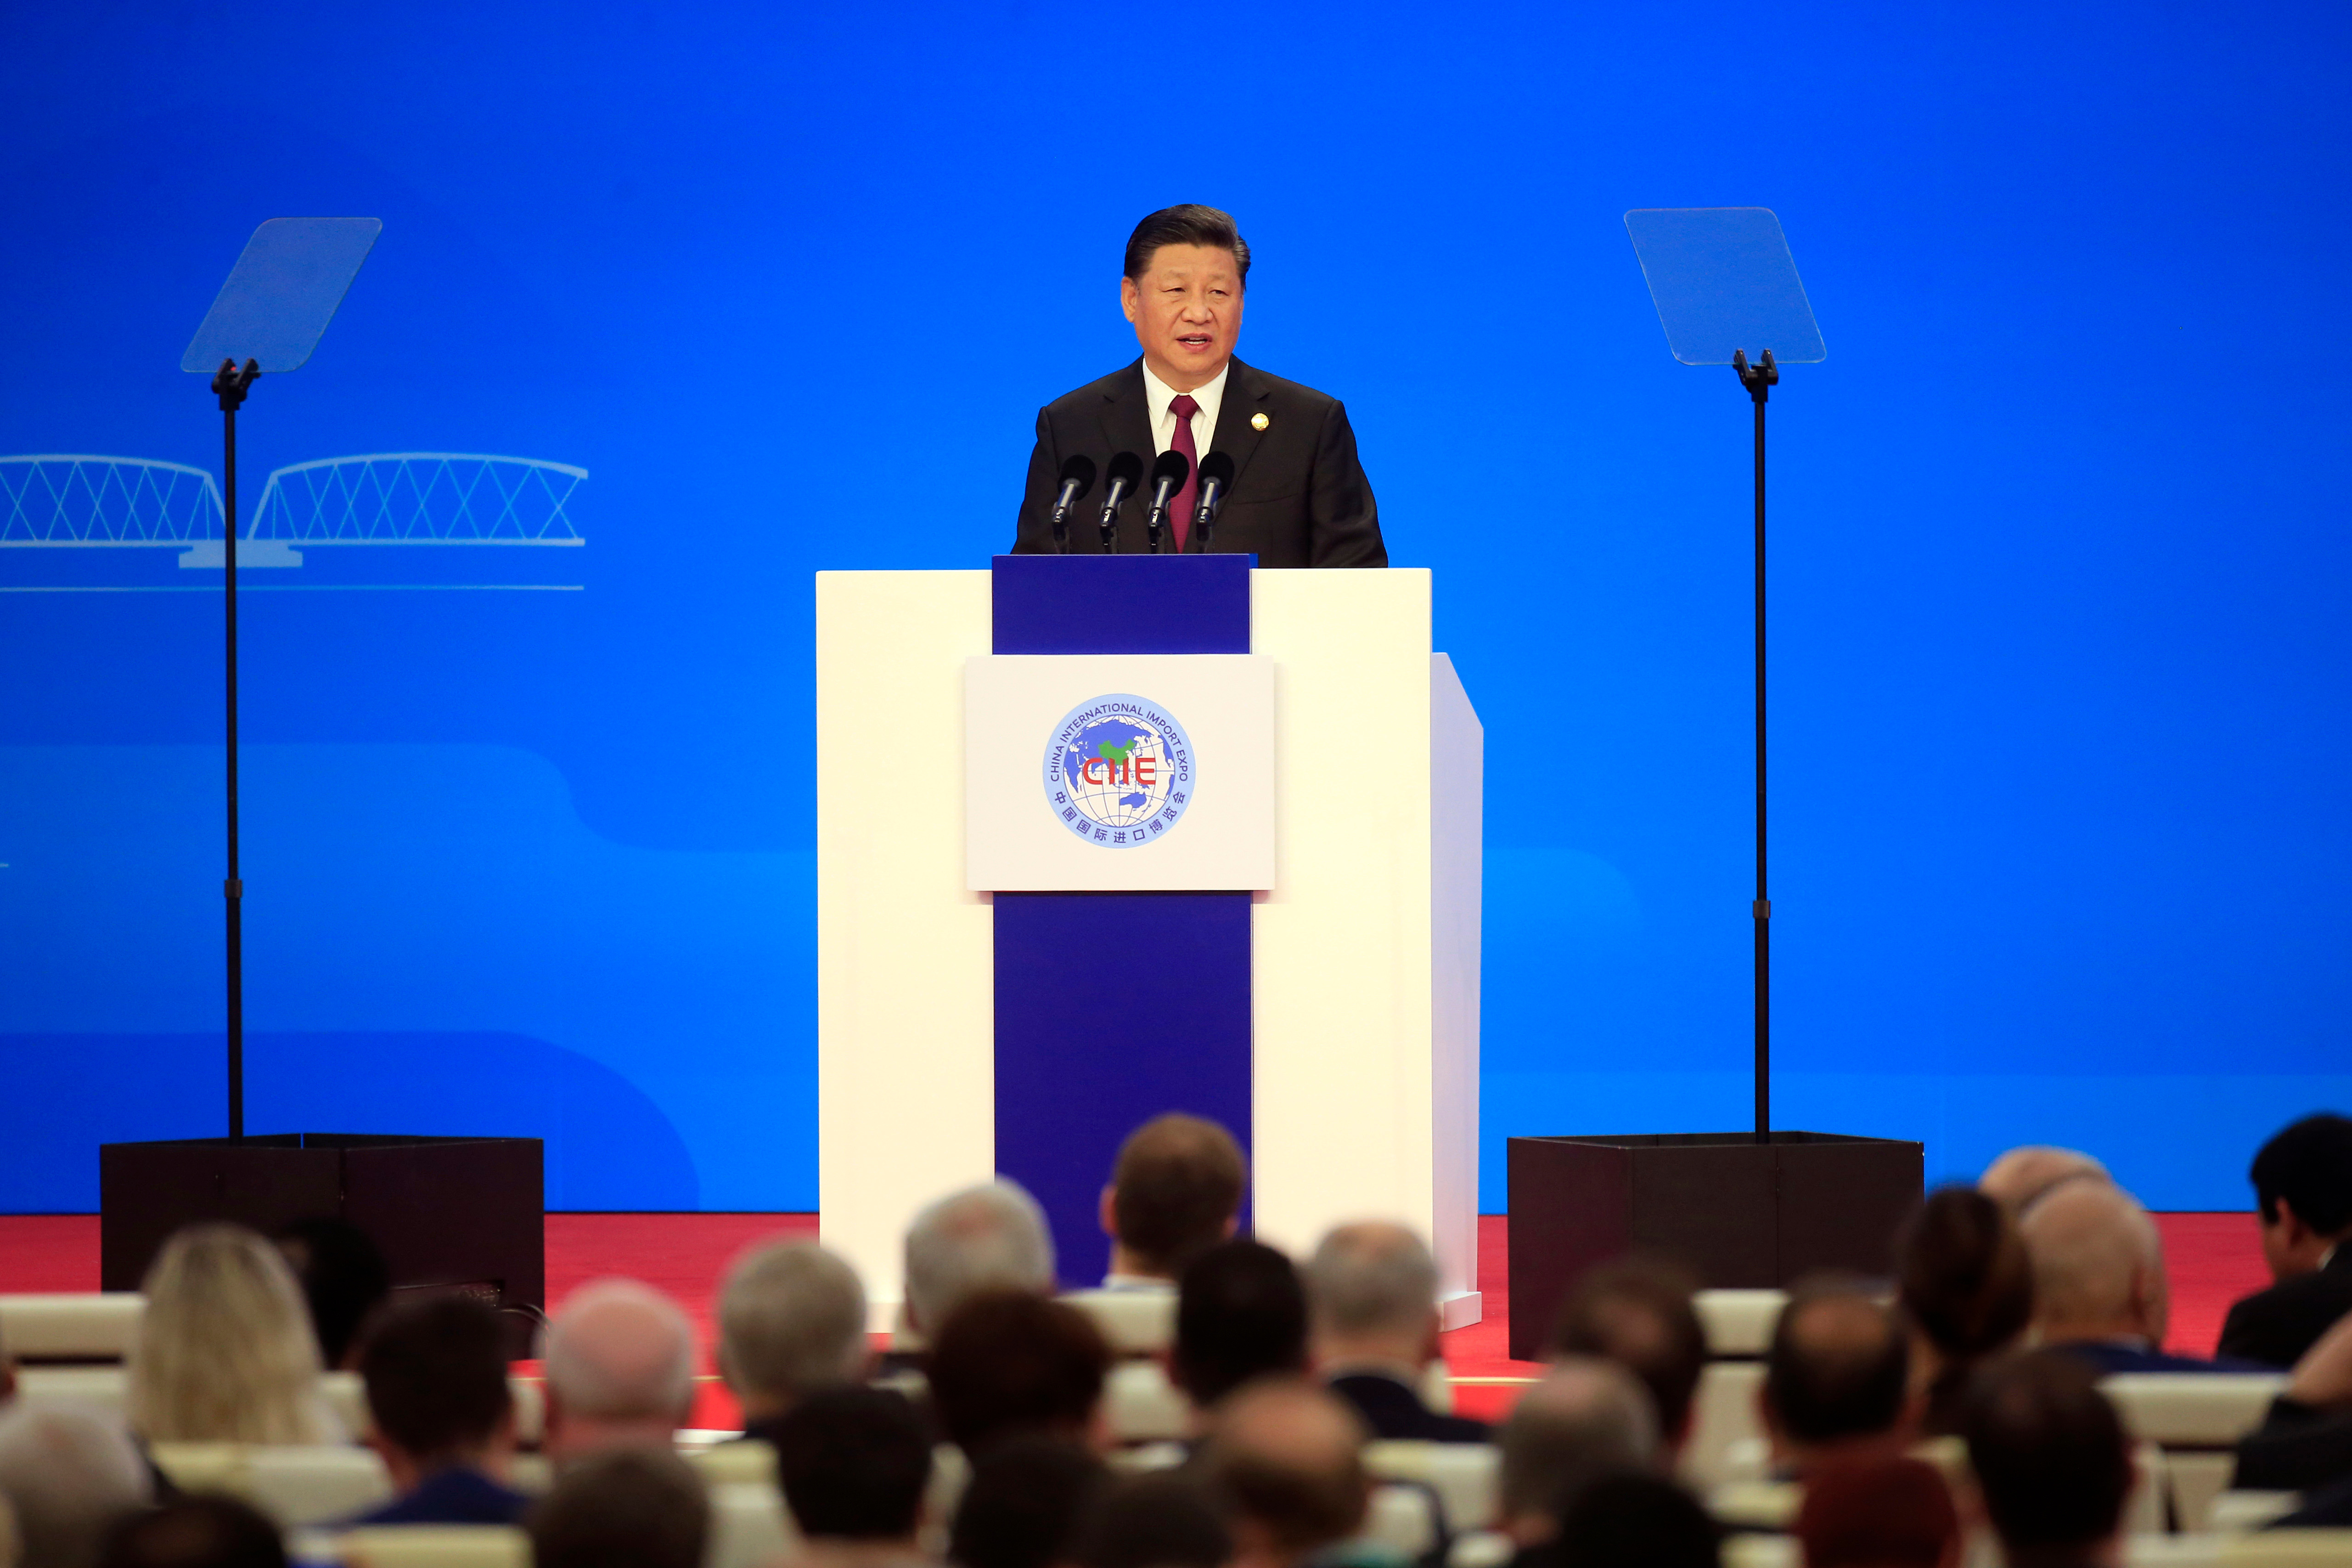 Chinese President Xi Jinping speaks at the opening ceremony for the China International Import Expo in Shanghai, . Xi promised Monday to open China wider to imports at the start of a high-profile trade fair meant to rebrand the country as a global customer but offered no response to U.S. and European complaints about technology policy and curbs on foreign businessImport Fair, Shanghai, China - 05 Nov 2018